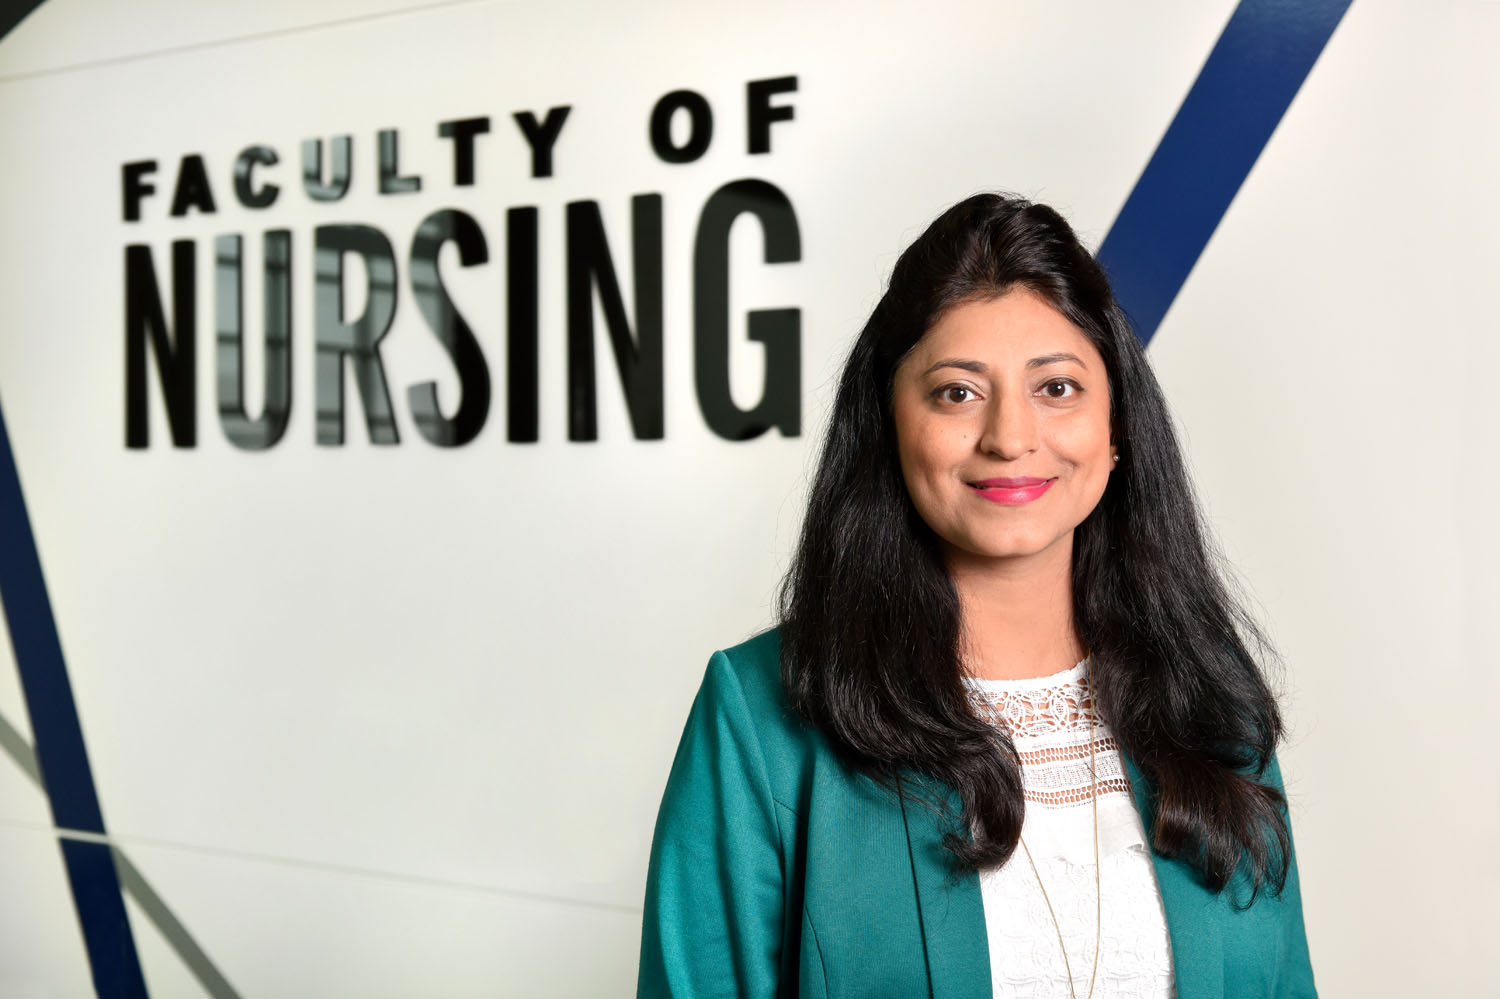 Faculty of Nursing's Dr. Shela Hirani was internationally recognized as an outstanding nurse and midwife leader.   (Photo by Rae Graham)